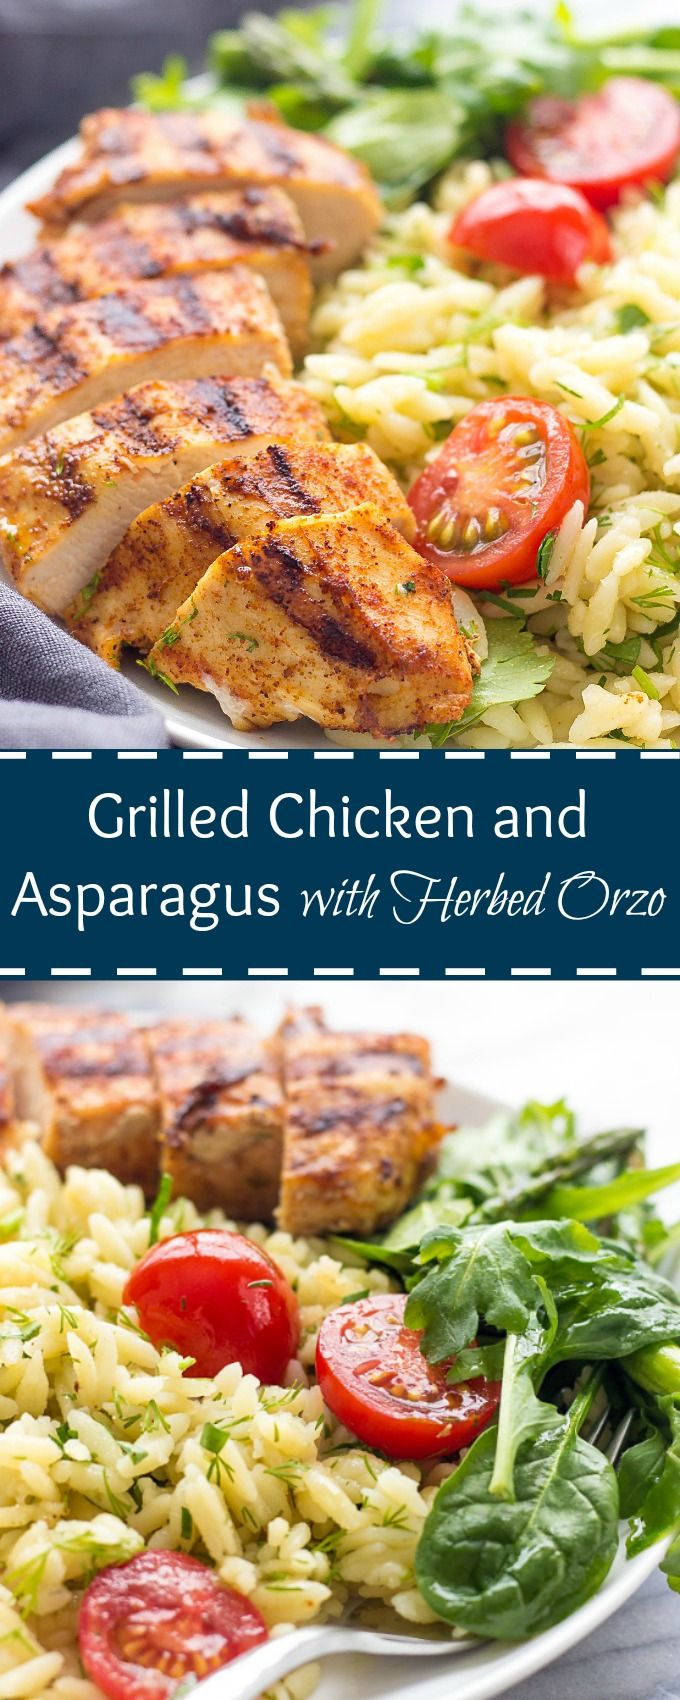 Grilled Chicken And Asparagus | Stovetop Grilled Chicken | How To Cook Grilled Chicken On A StoveTop | Grilled Asparagus Salad